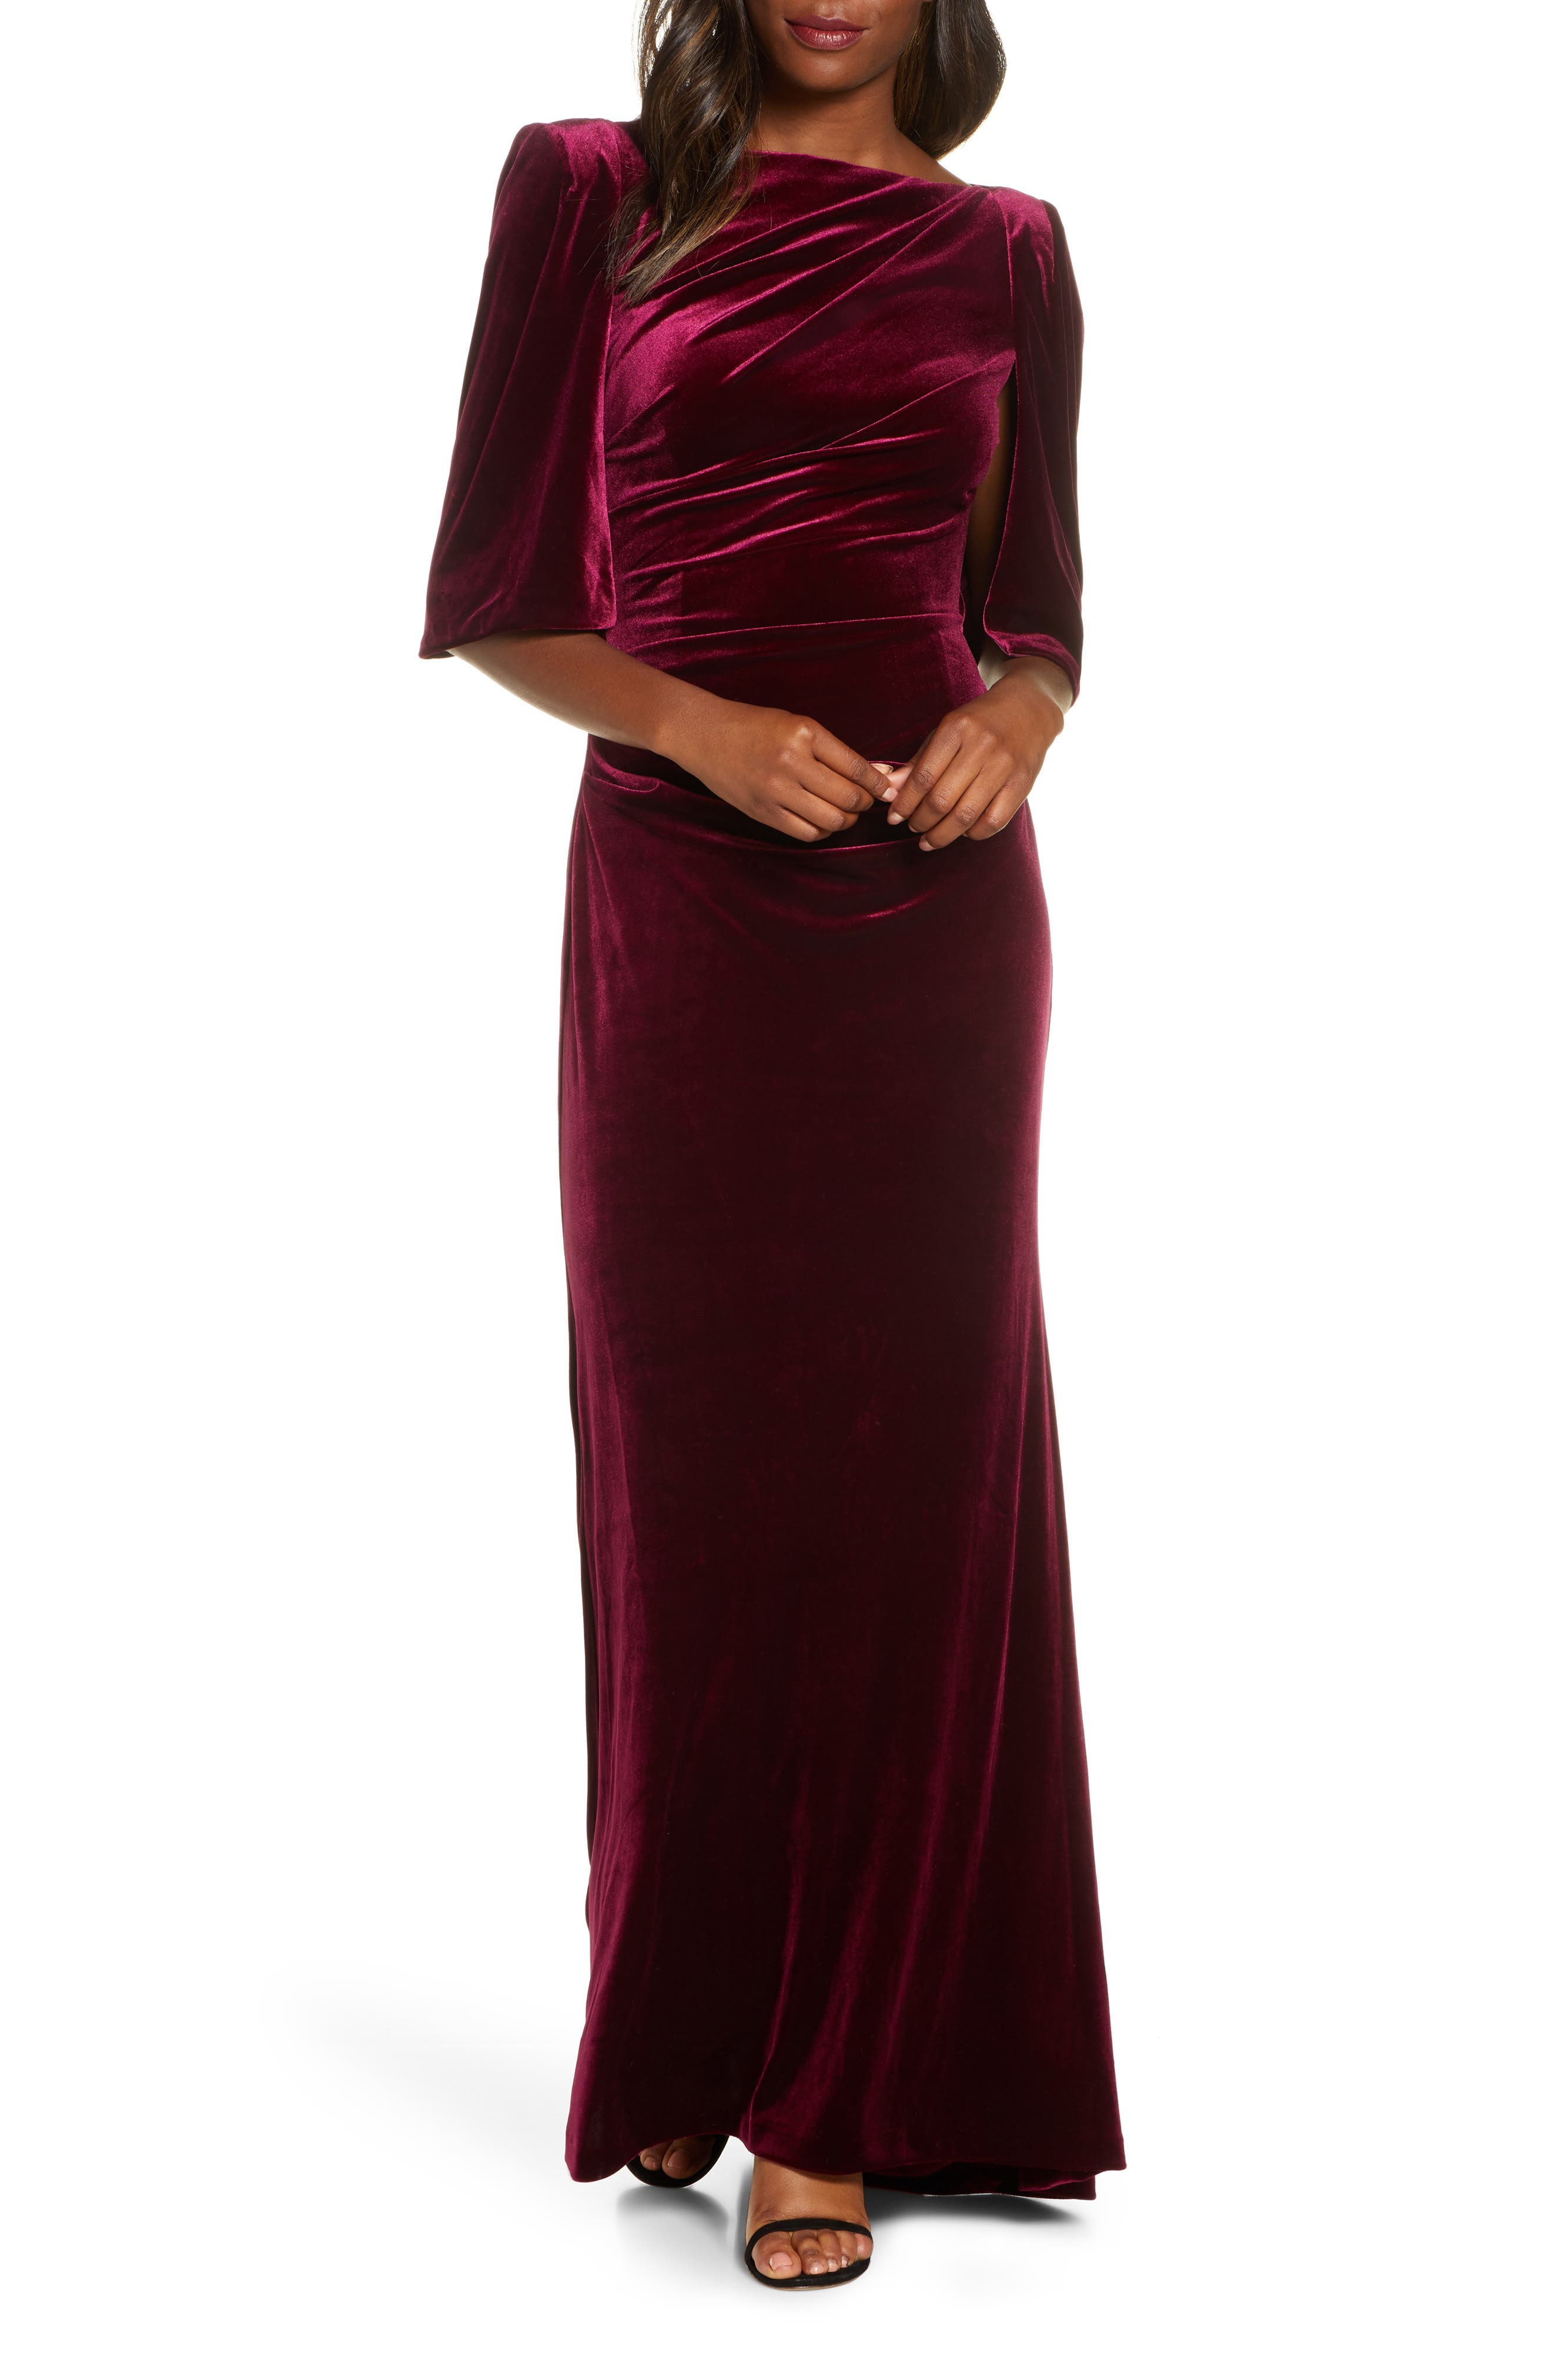 1940s Evening, Prom, Party, Formal, Ball Gowns Womens Eliza J Capelet Velvet Gown $188.00 AT vintagedancer.com